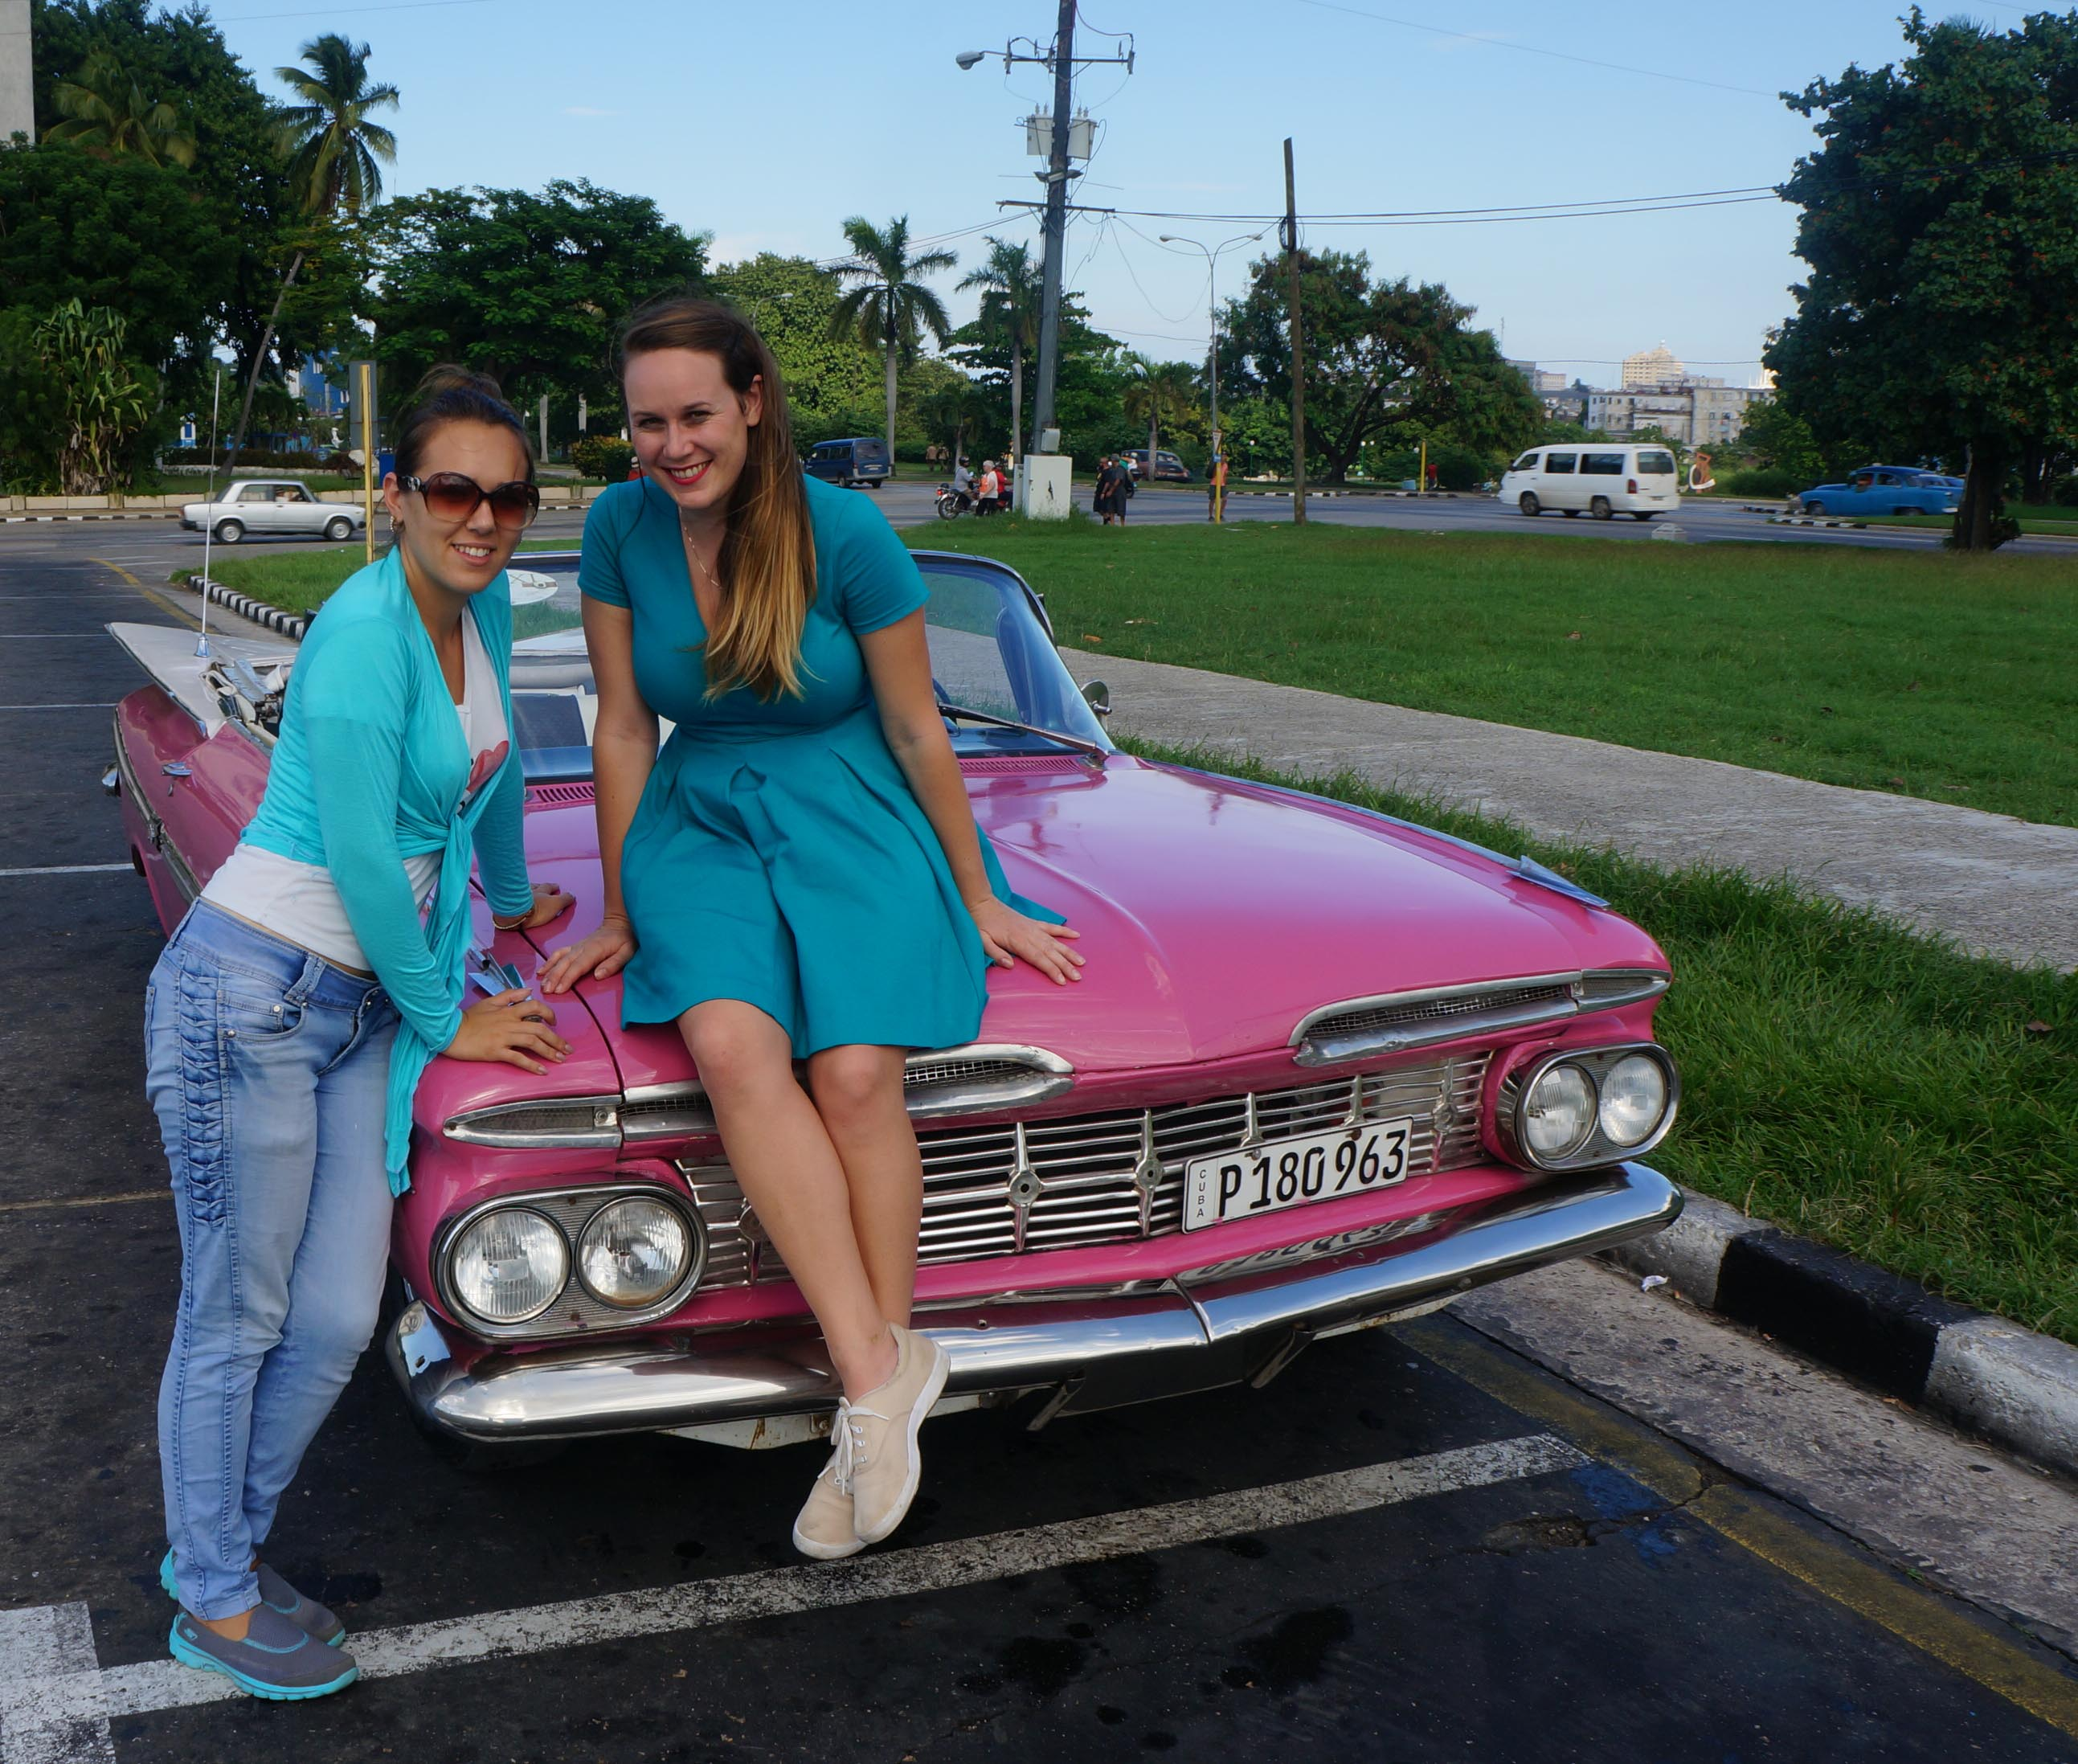 Letters from Lockdown: Life in Cuba During the COVID-19 Pandemic